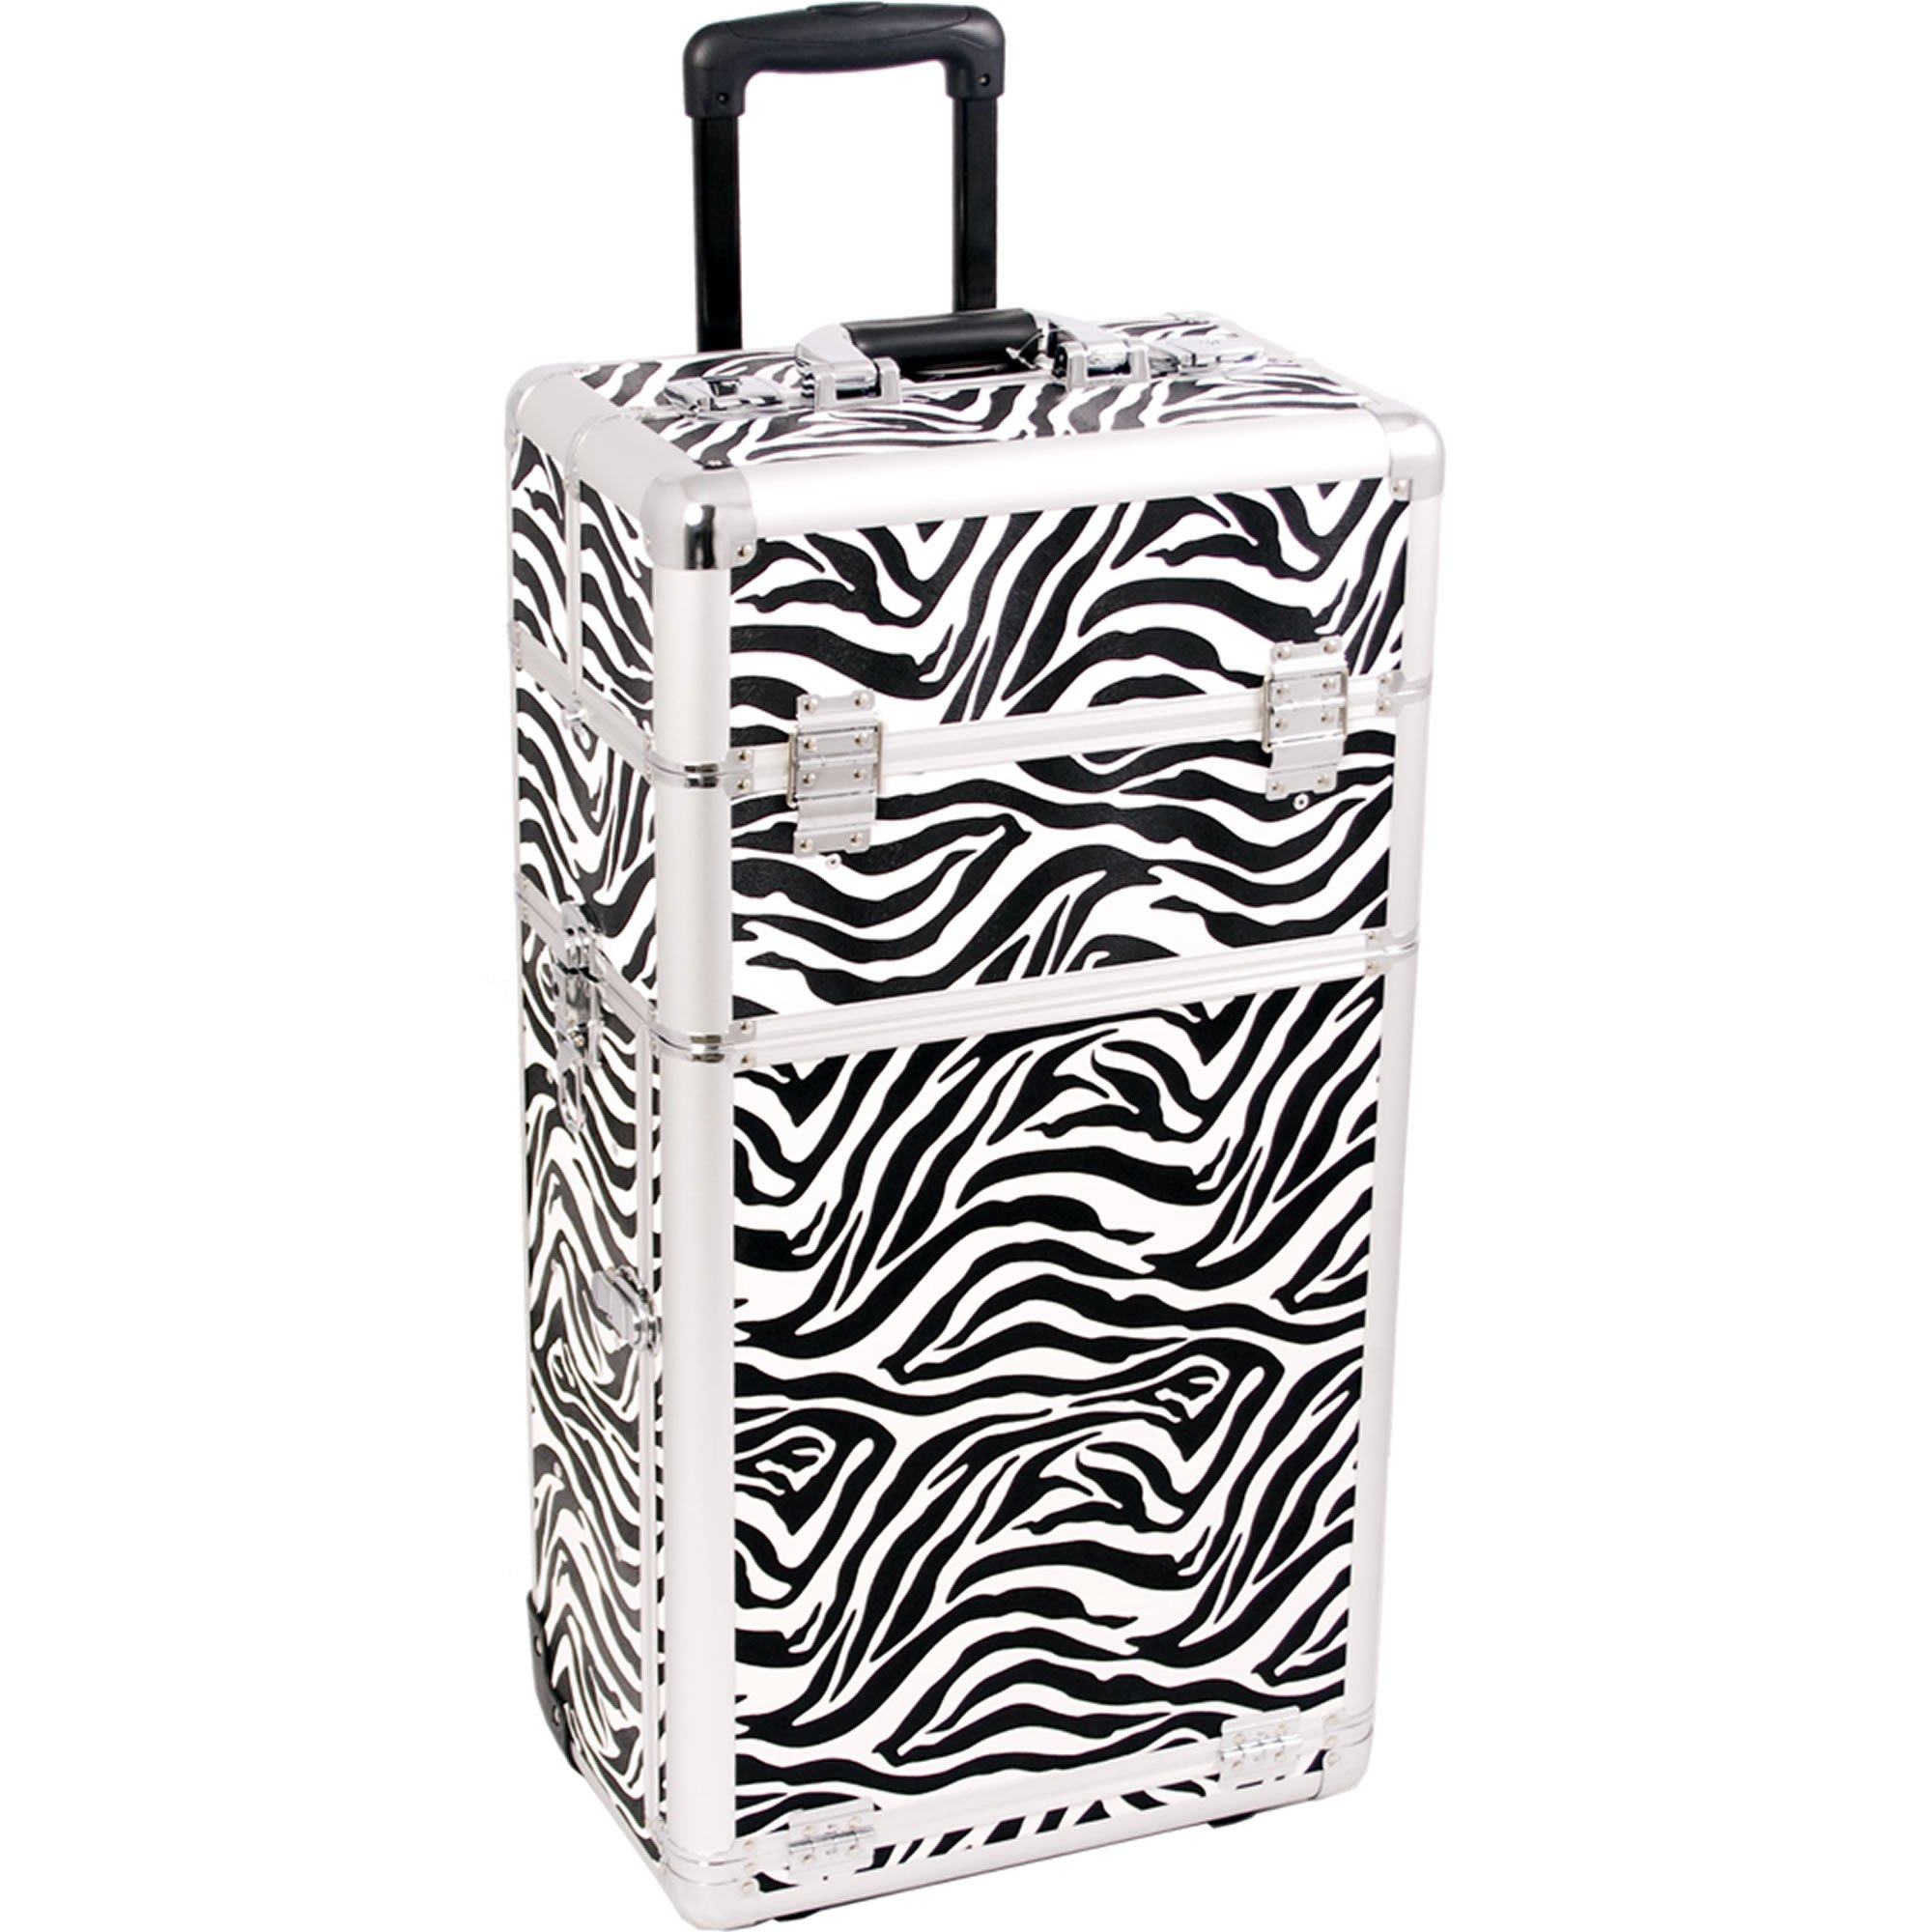 SUNRISE Makeup Case on Wheels 2 in 1 I3262 Cosmetic Organizer, 3 Slide Trays and 4 Small Drawers, Locking with Mirror and Shoulder Strap, White Zebra by SunRise